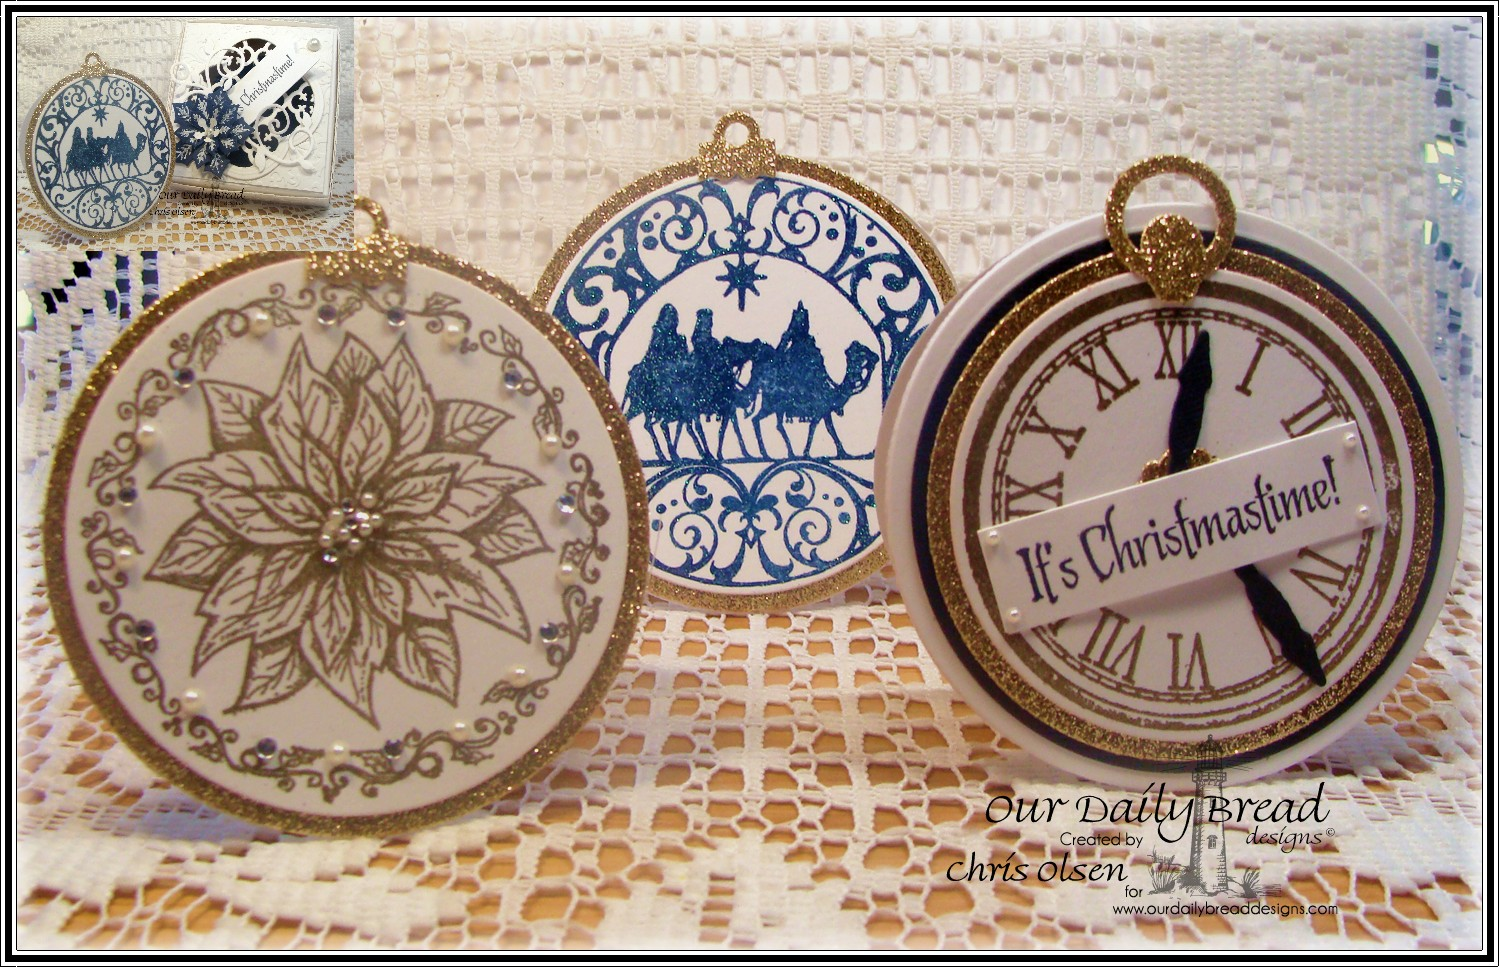 Stamps - Our Daily Bread Designs Poinsettia Ornament, God's Timing, Wisemen Ornament, ODBD Custom Circle Ornaments Dies, ODBD Custom Matting Circles Dies, ODBD Custom Peaceful Poinsettias Dies, ODBD Custom Quatrefoil Pattern Die, ODBD Custom Pennants Dies